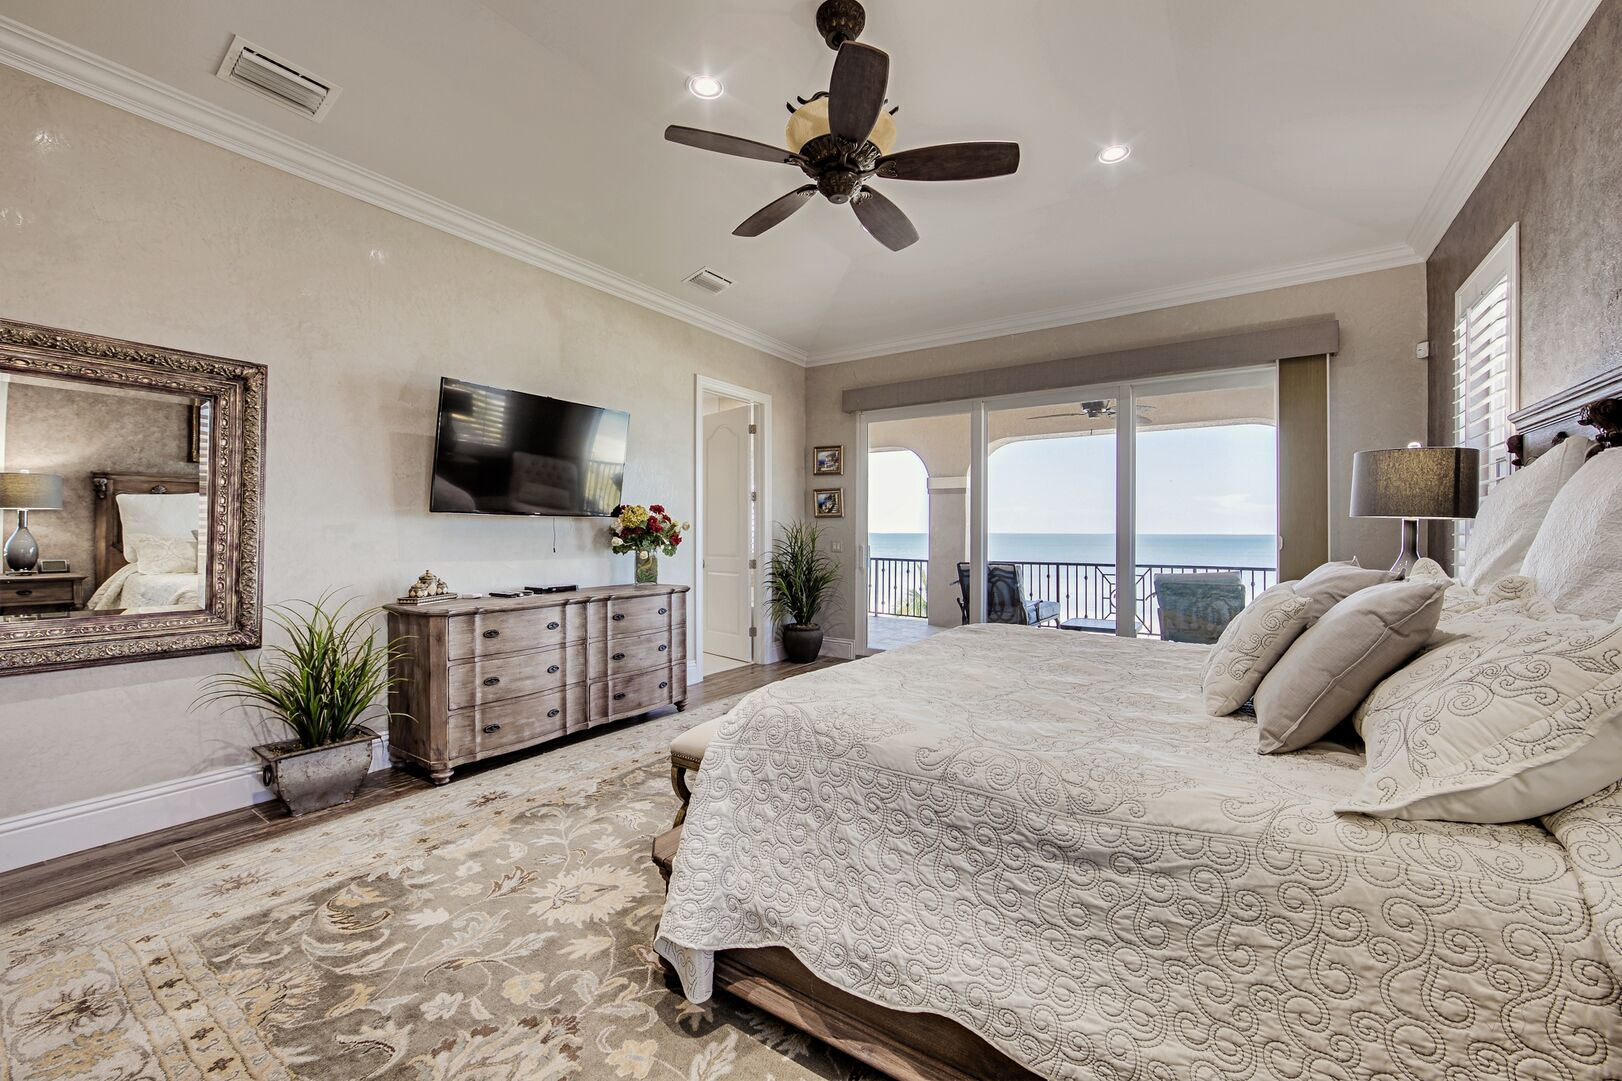 Large Bed, Dresser, TV, Nightstands, Ceiling Fan, and the Sliding Doors to the Balcony.